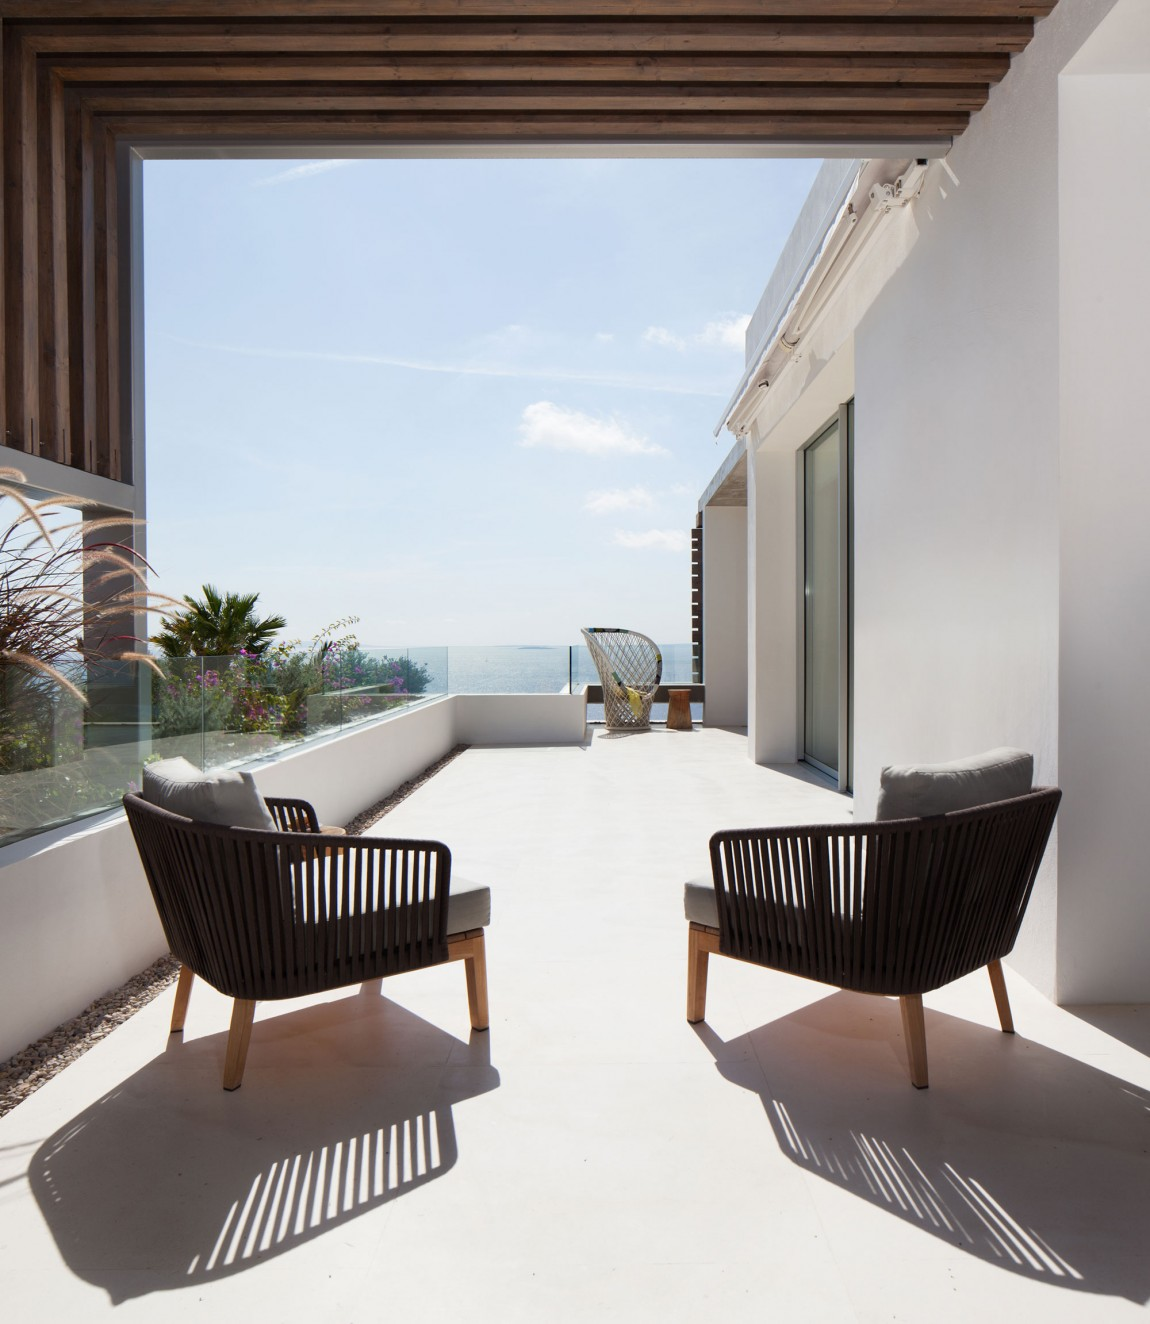 Terrace furniture in modern villa Roca by SAOTA